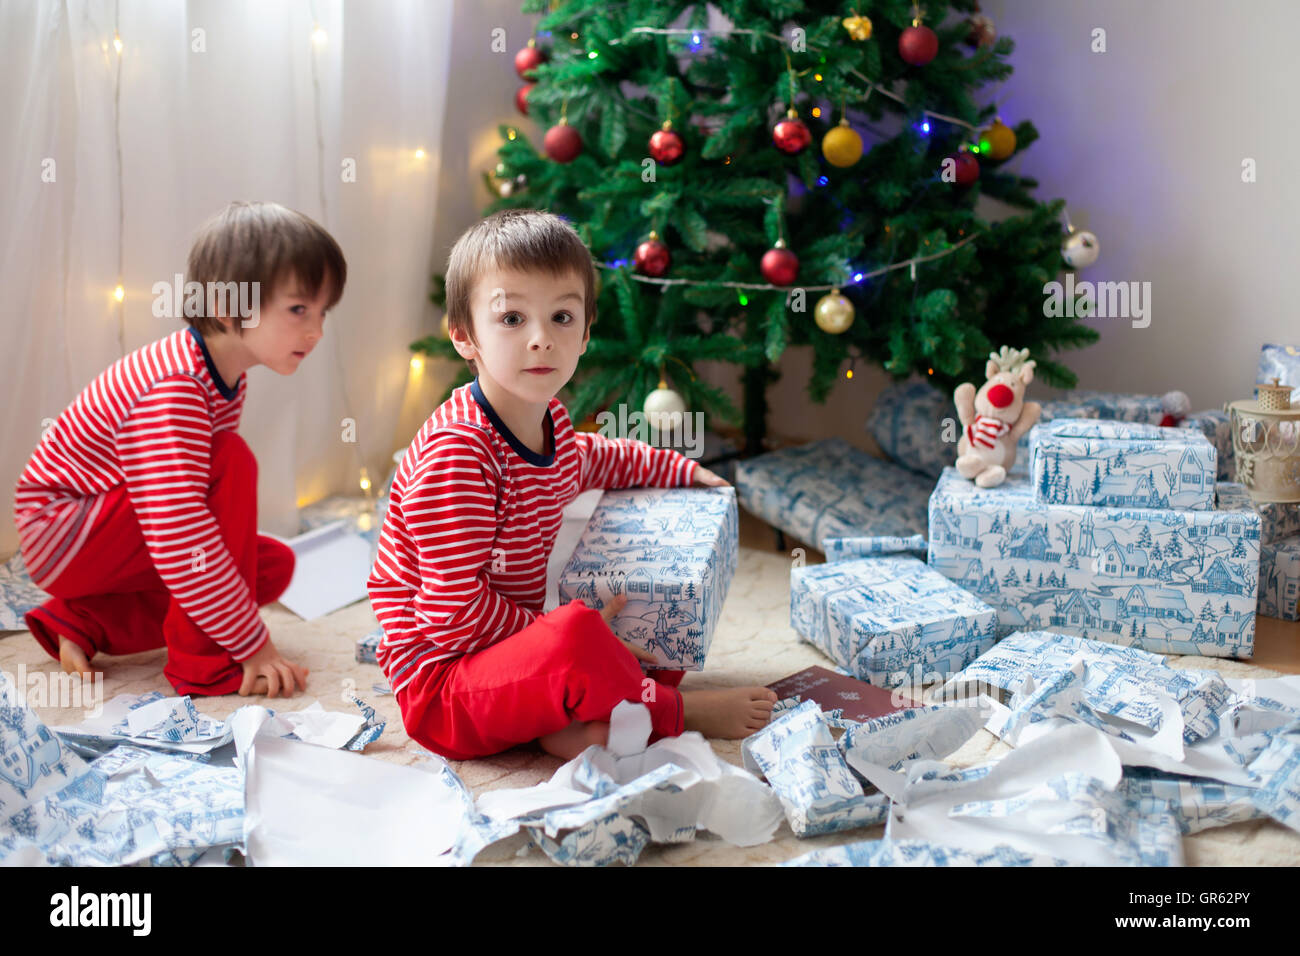 Boy Opening Christmas Presents Stock Photos & Boy Opening Christmas ...